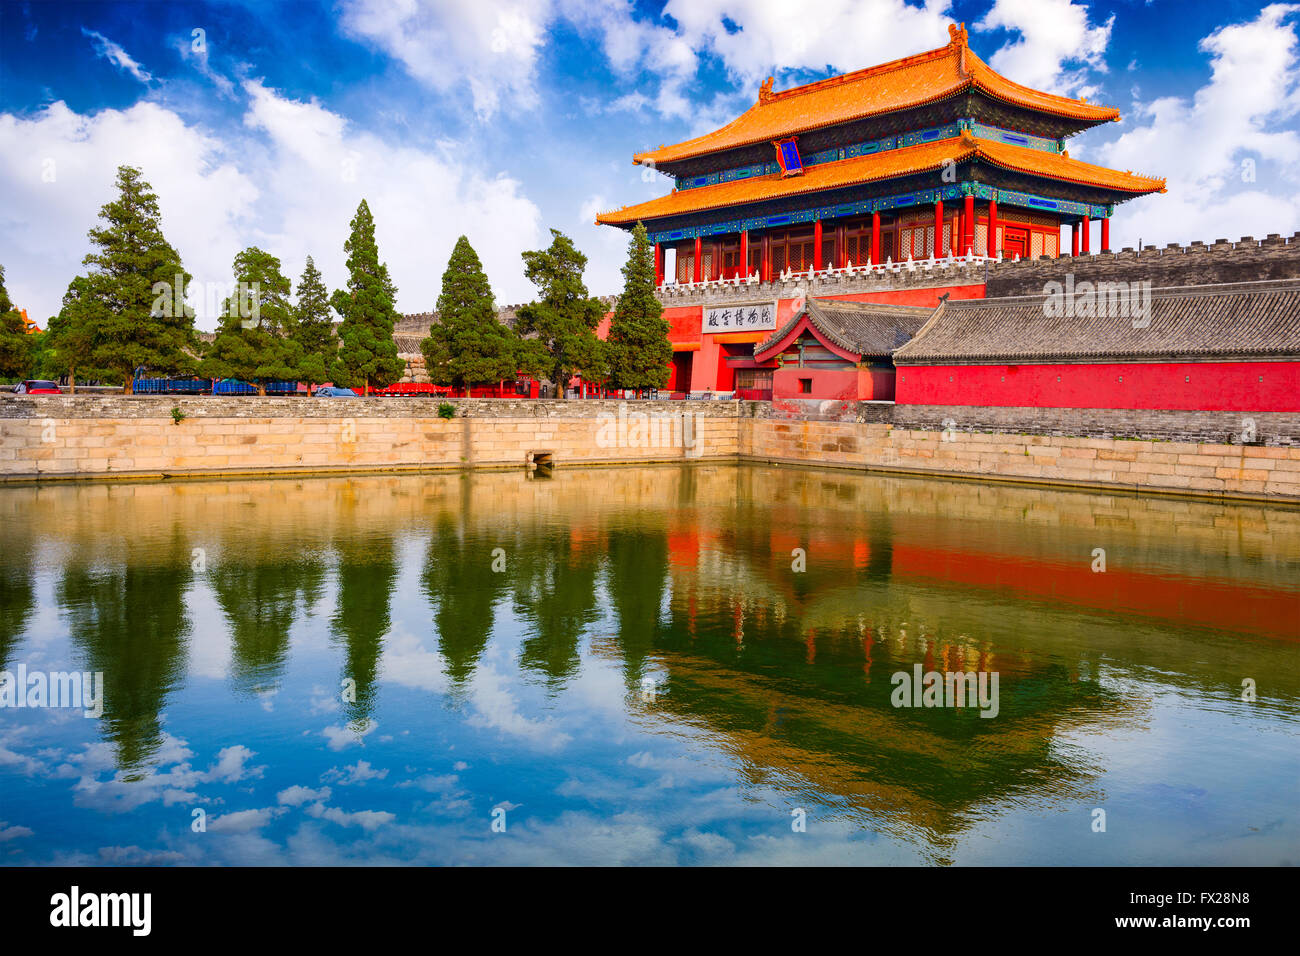 Beijing, China at the northern gate of the Forbidden City. Stock Photo